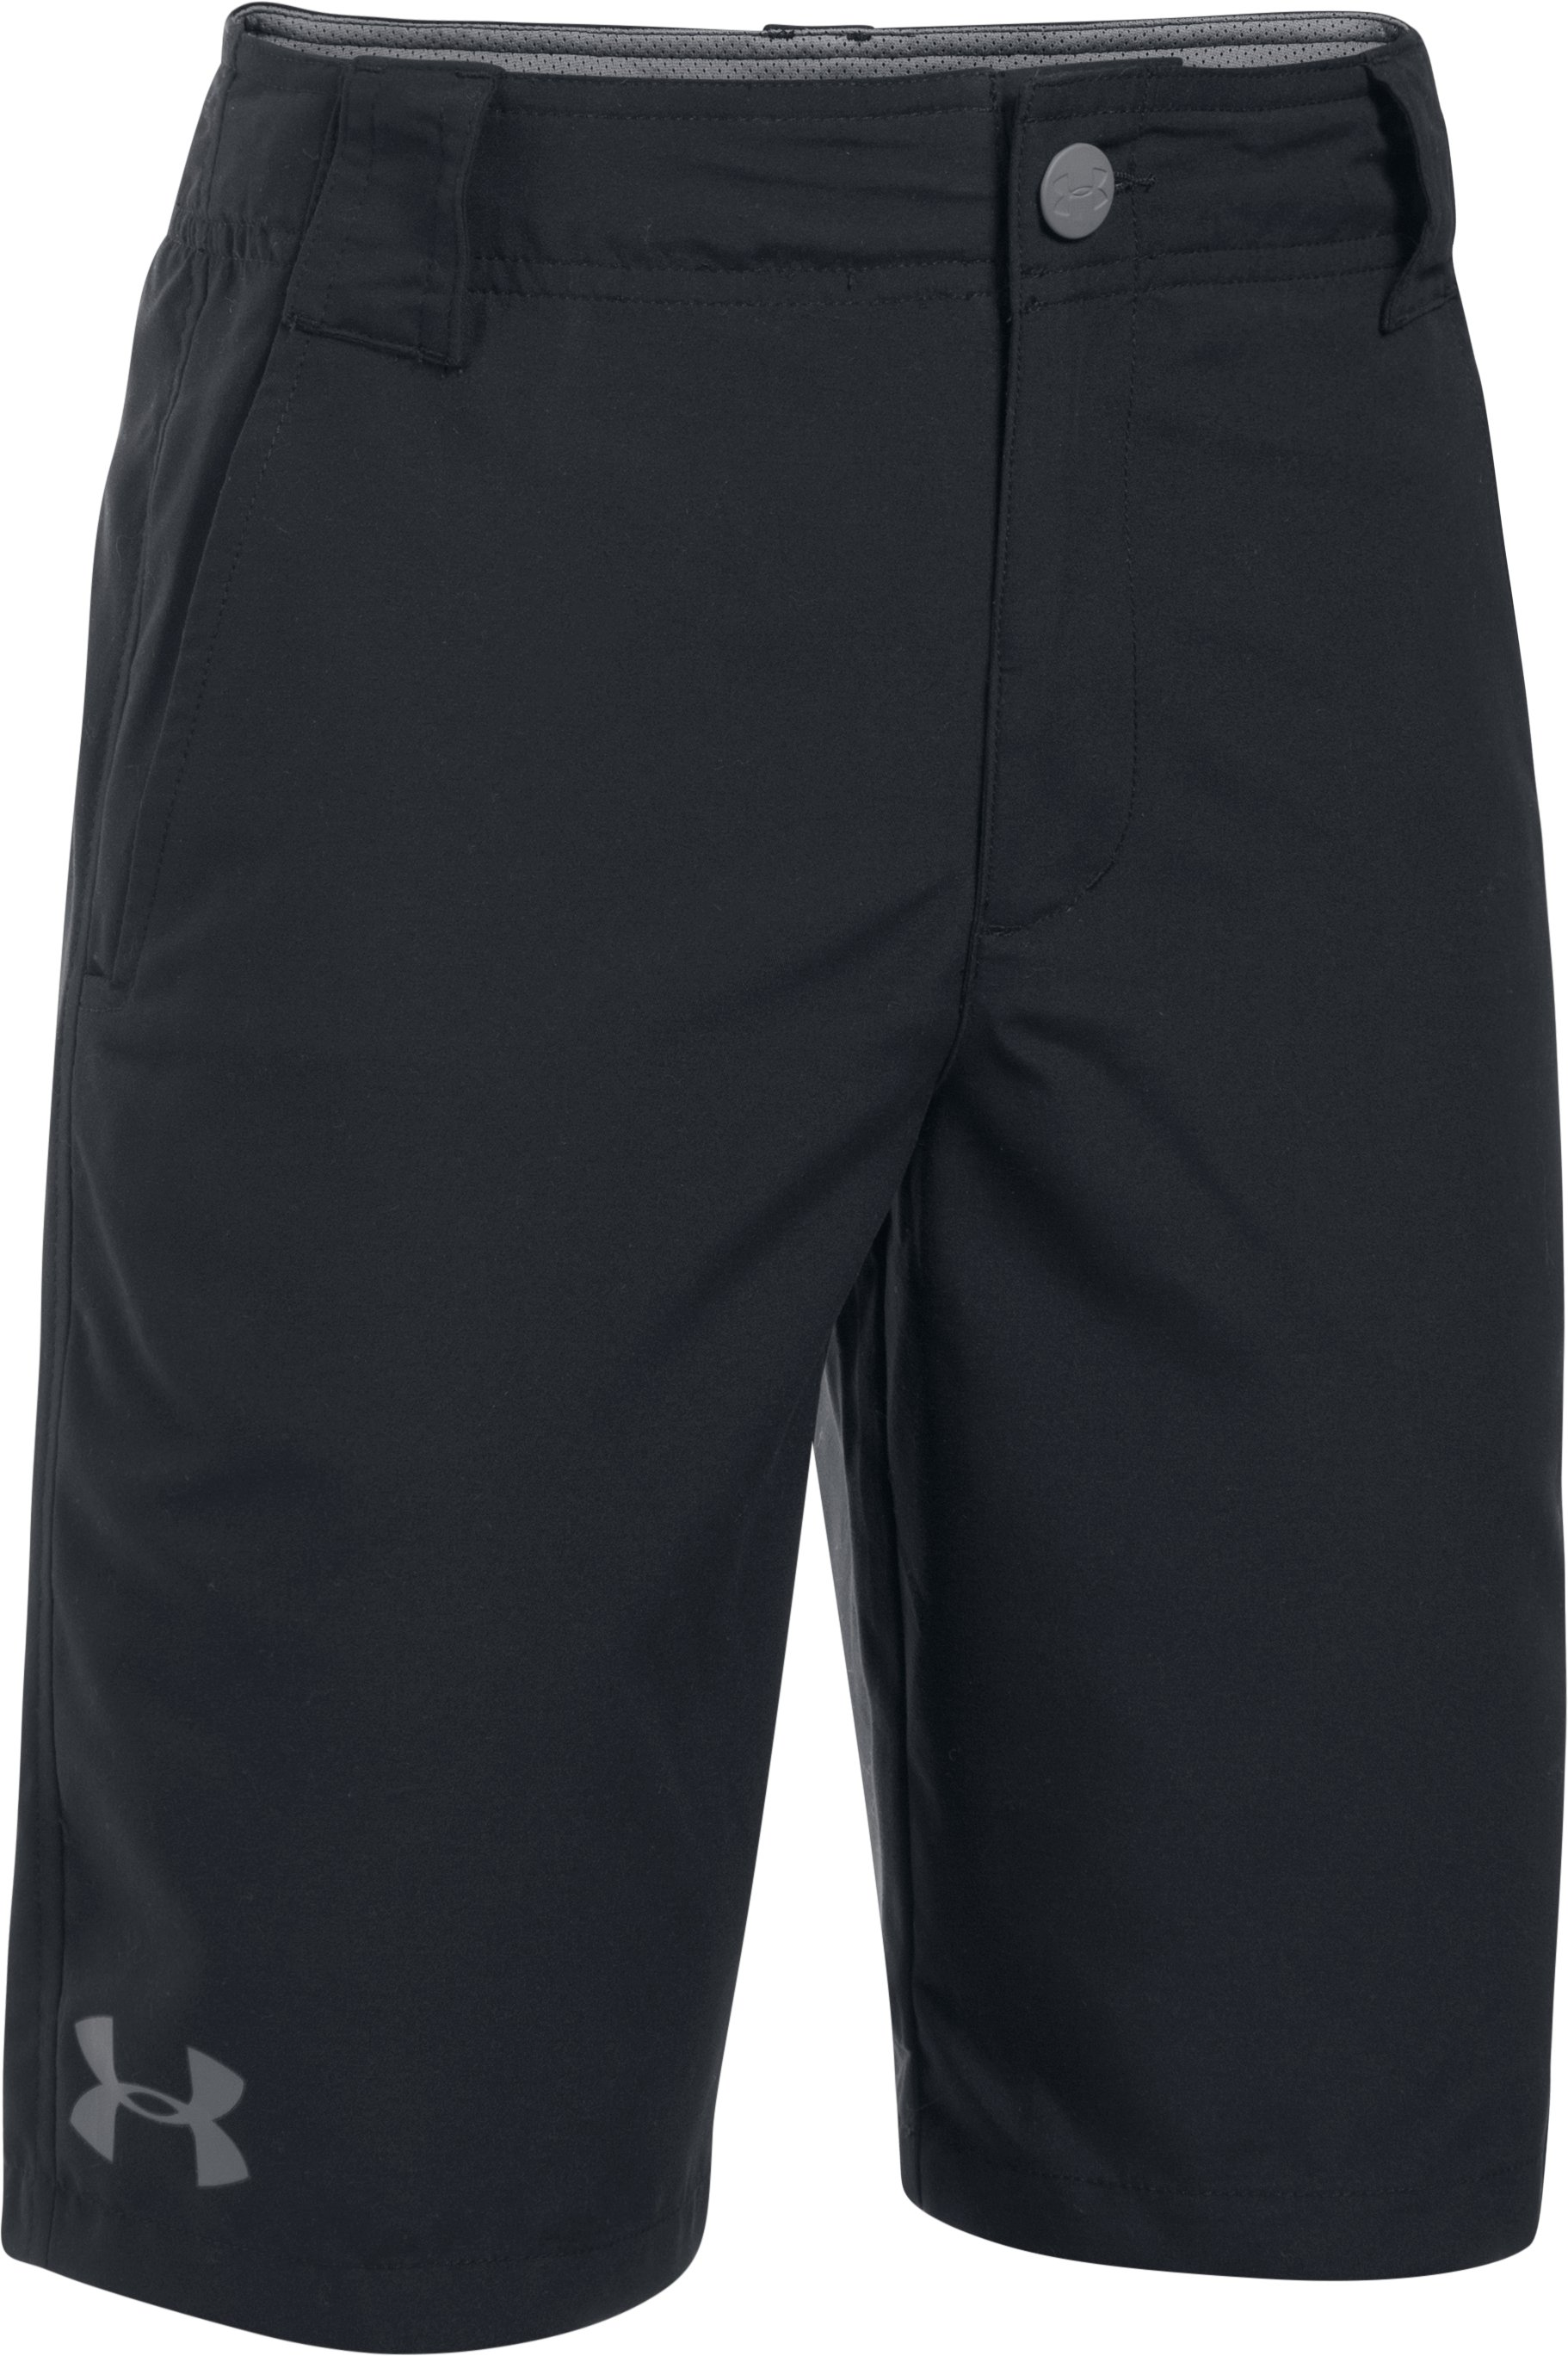 Boys' UA Embarker Amphibious Boardshorts, Black